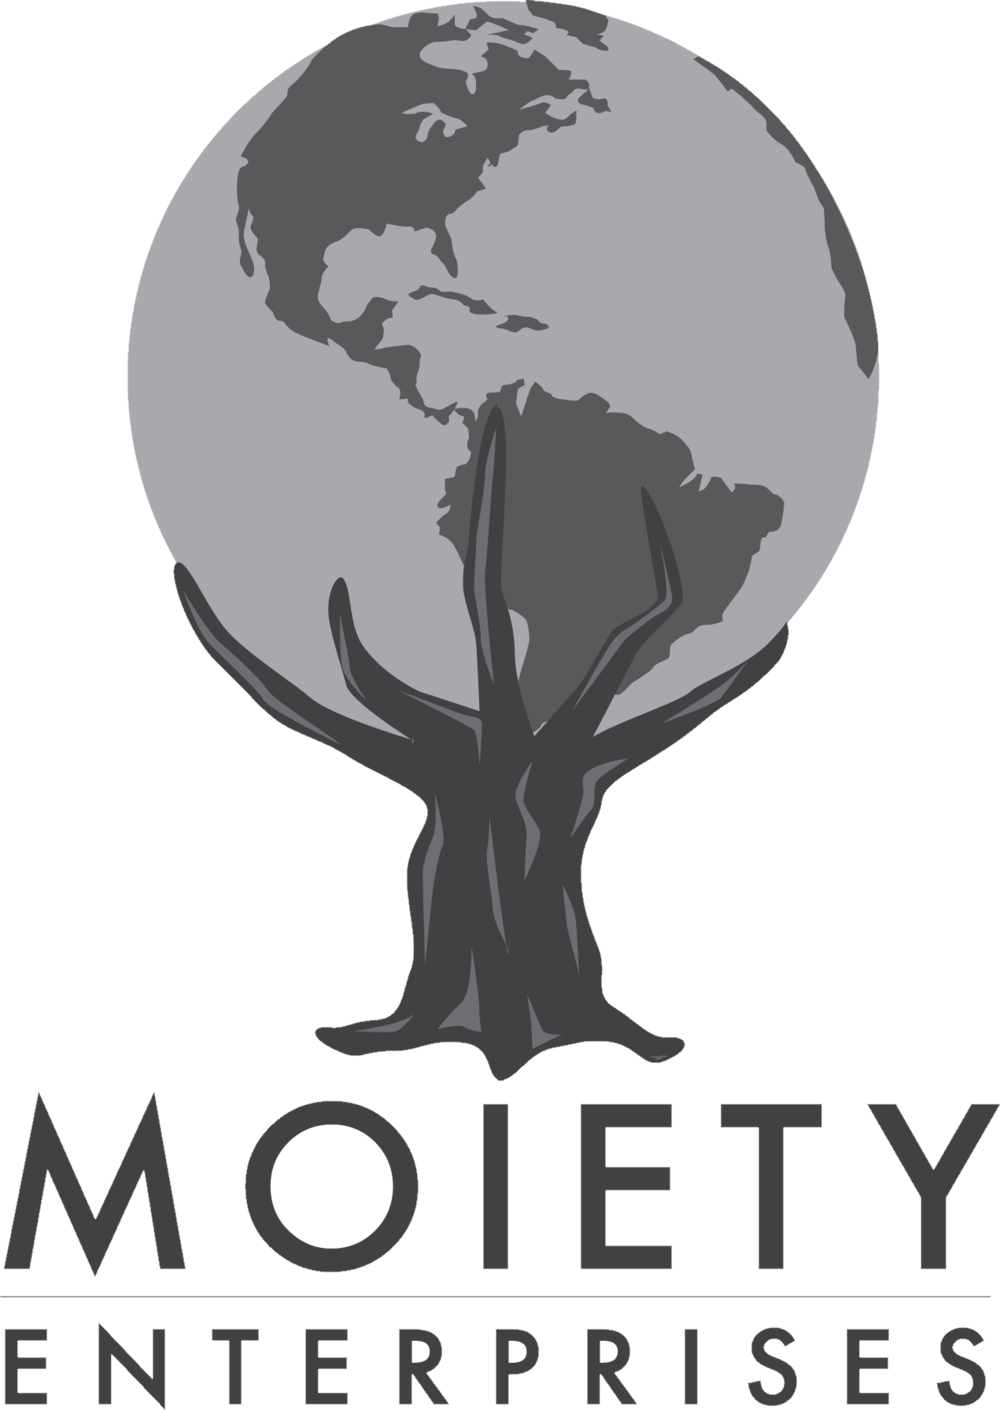 moiety_ent.png